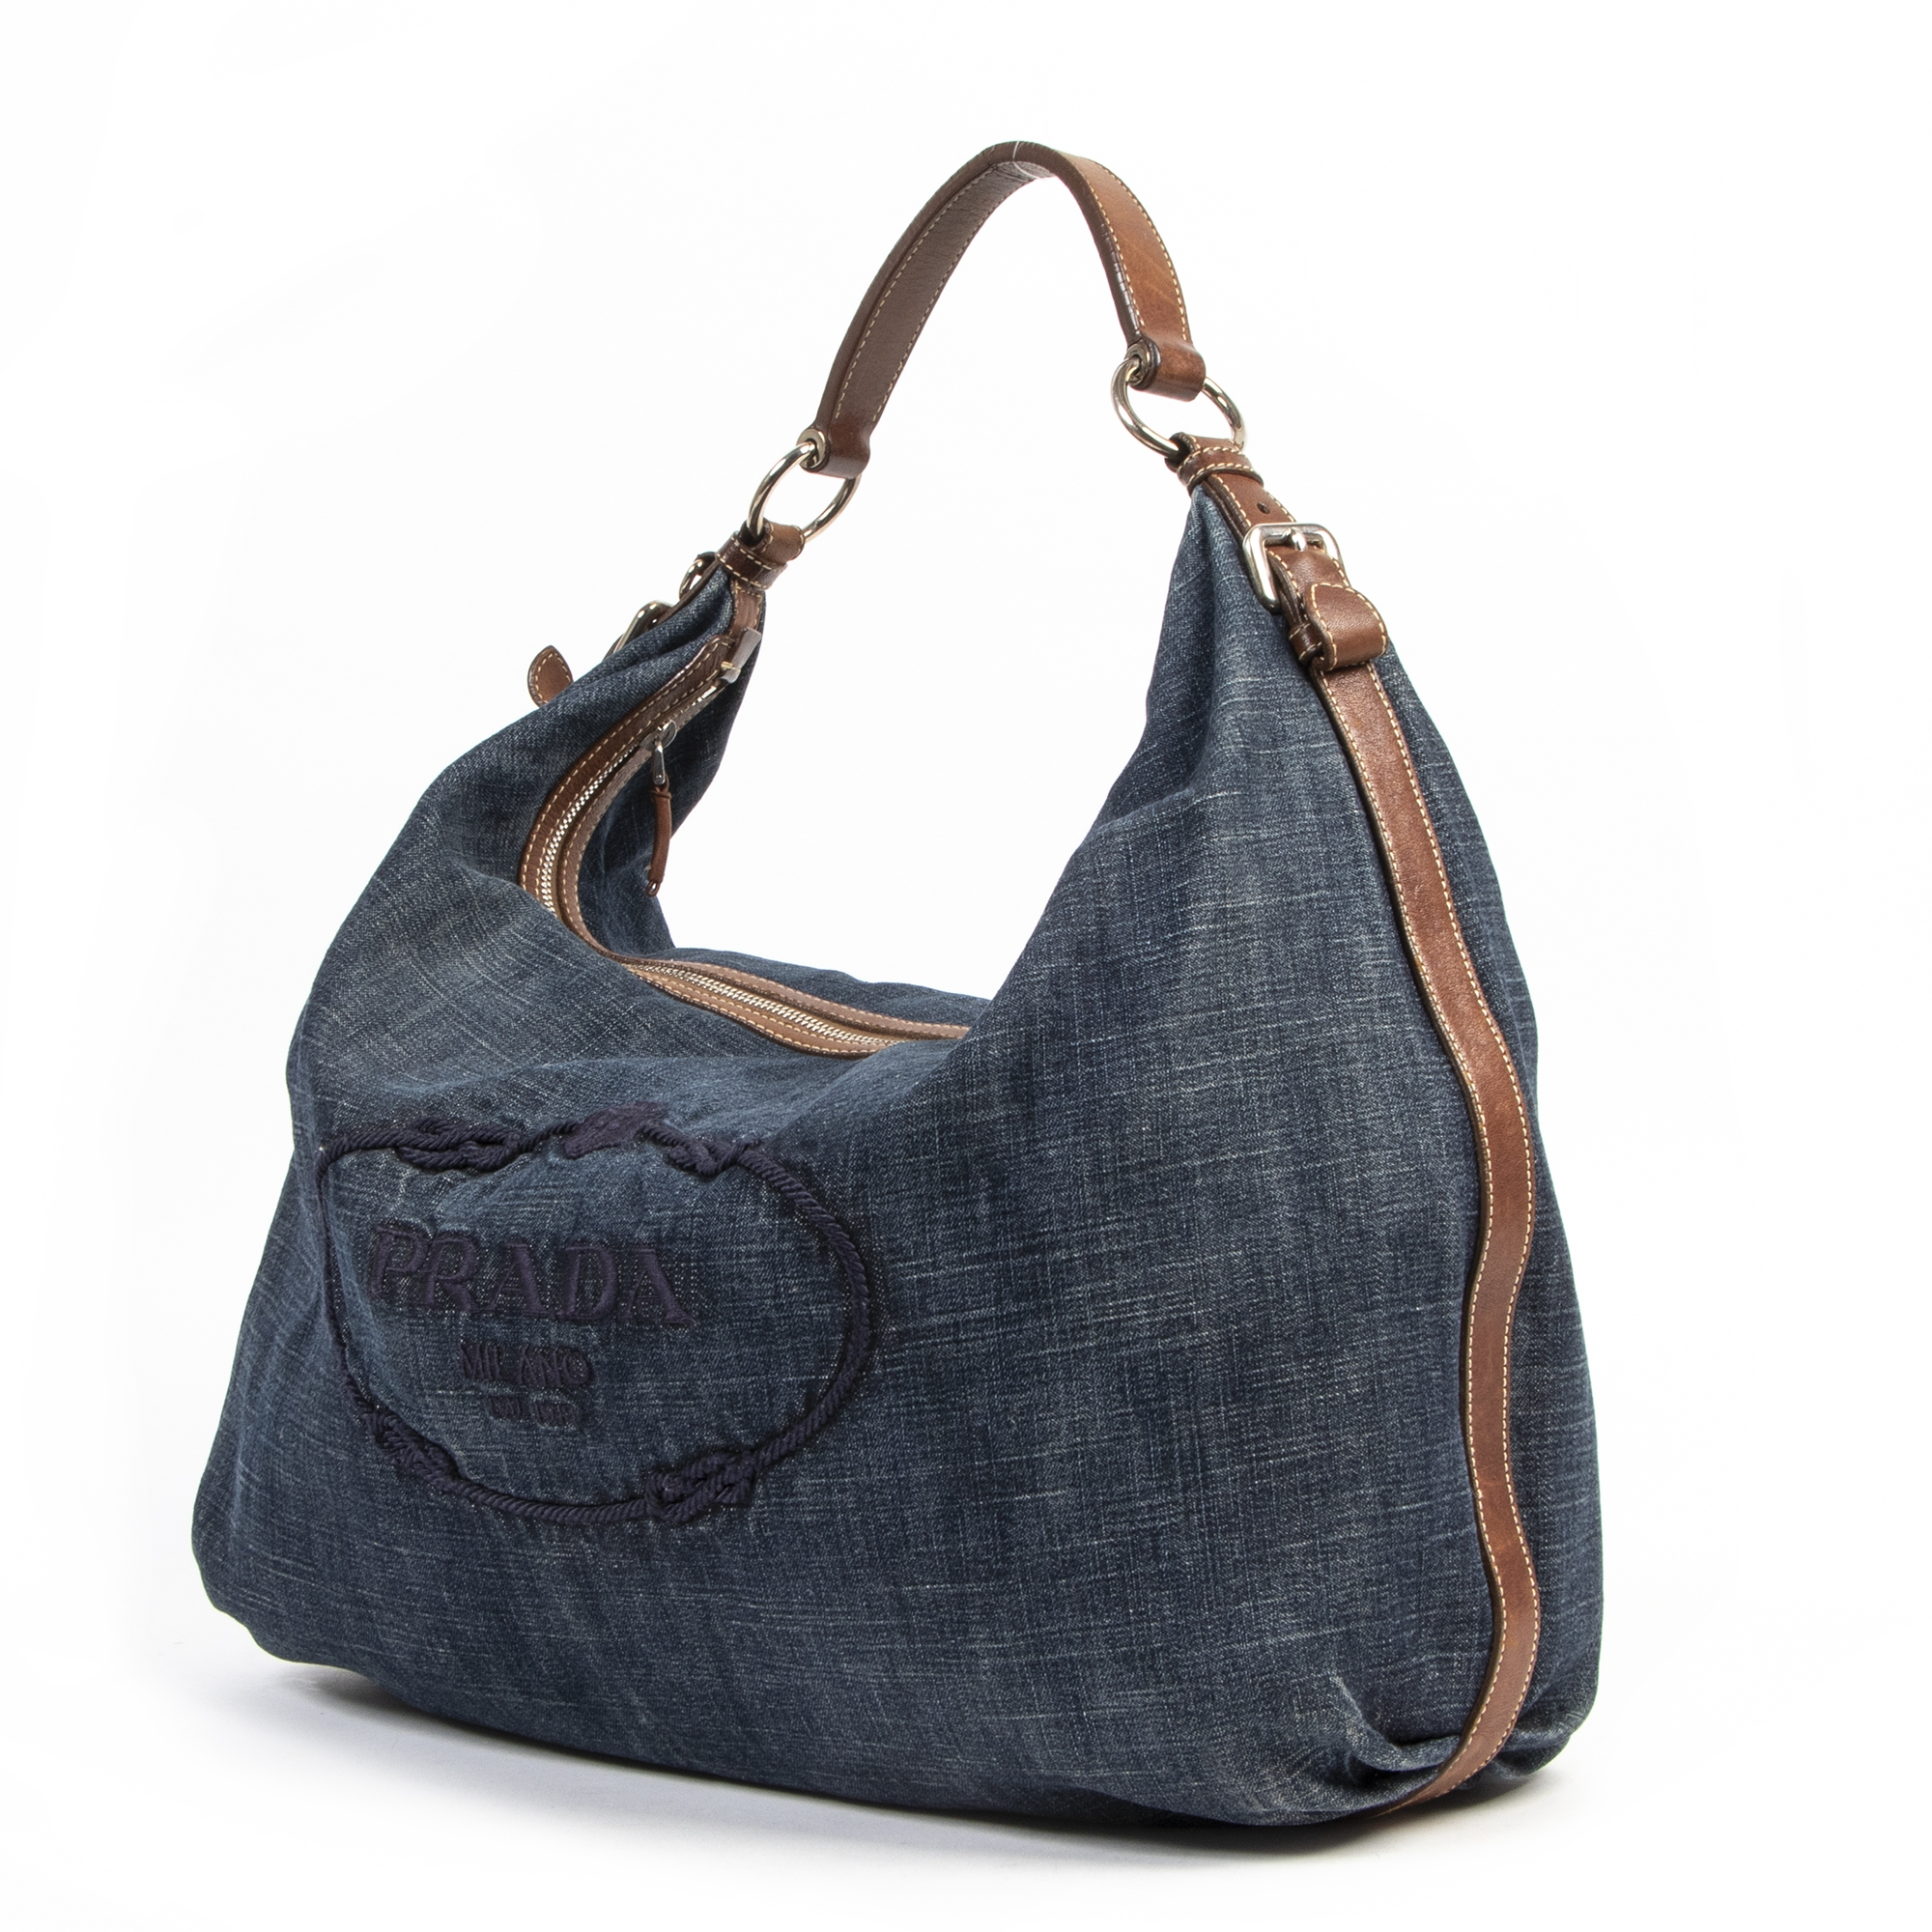 Prada Denim Leather Hobo Bag for the best price at Labellov